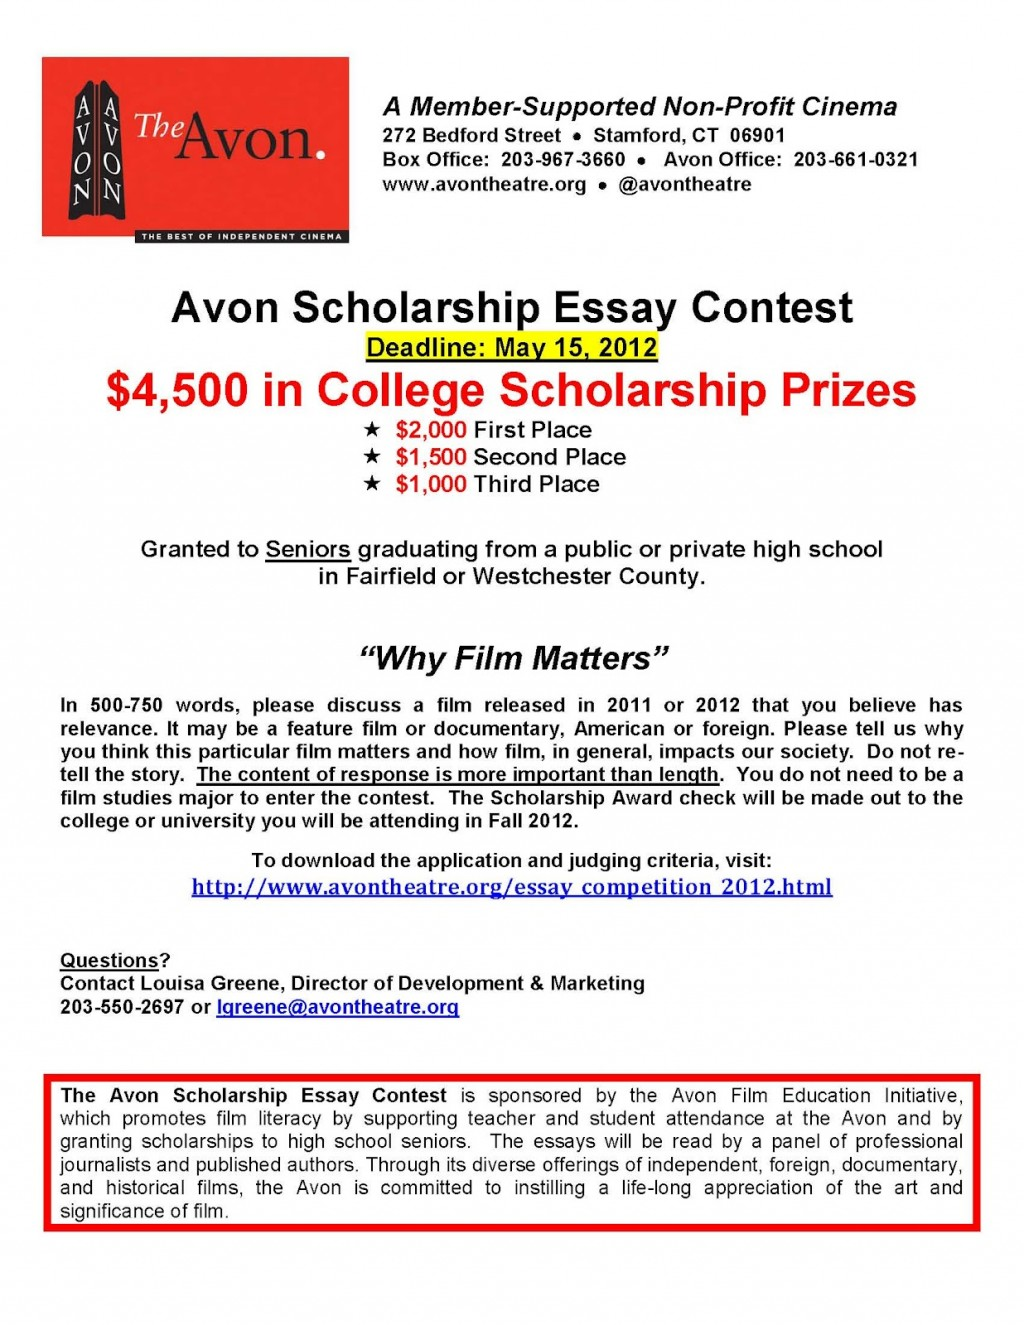 016 Avonscholarshipessaycontest2012flyer Essay Example Shocking Scholarships 2018 Canada 2019 No For High School Juniors Large